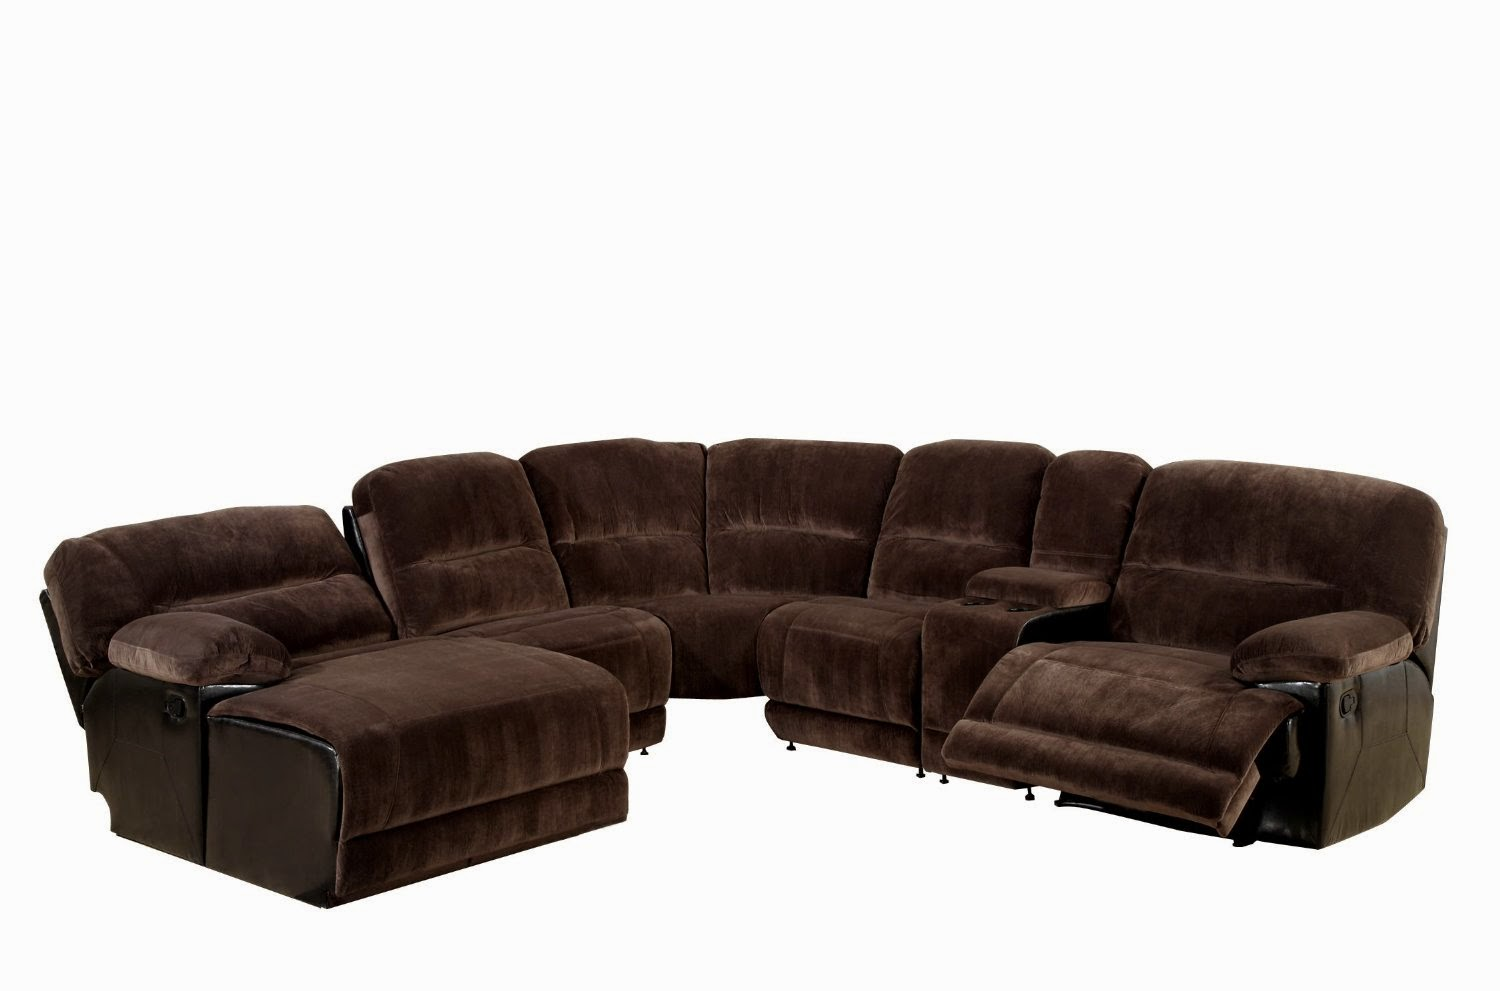 modern sectional sofa with recliner jonathan adler uk reclining sofas for sale cheap saddle microfiber